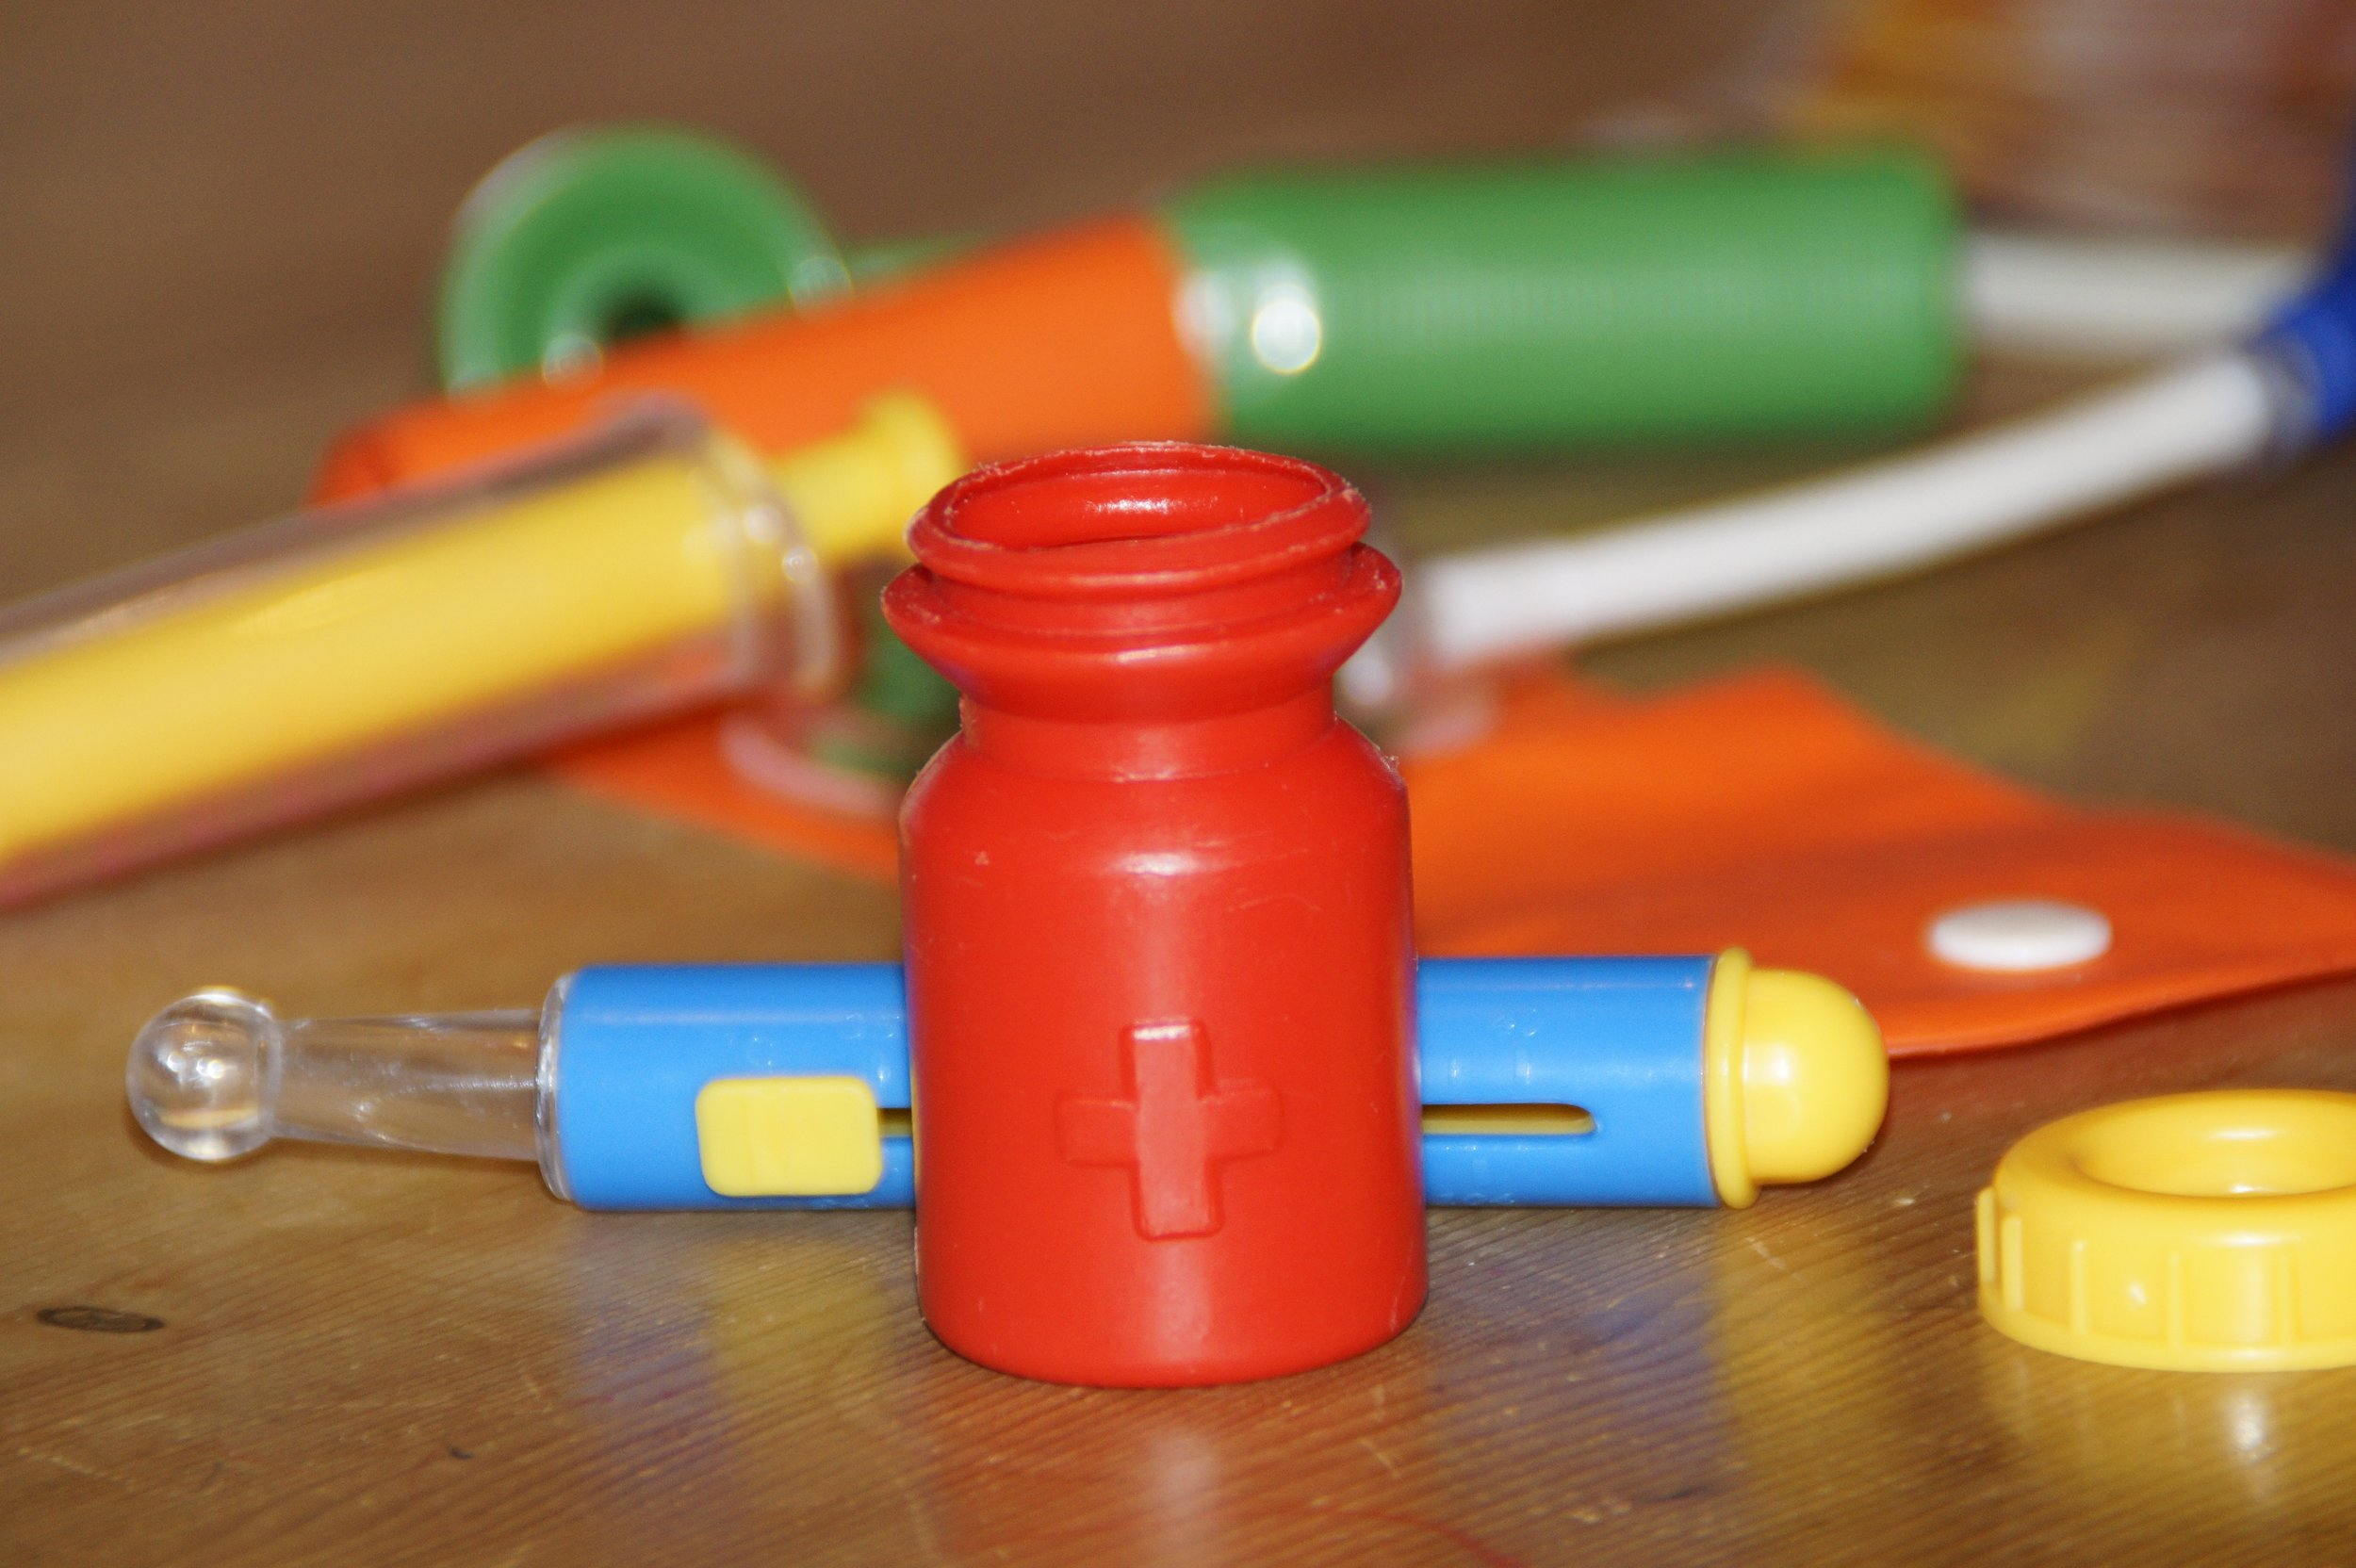 play-color-child-bottle-yellow-toy-1003303-pxhere.com.jpg